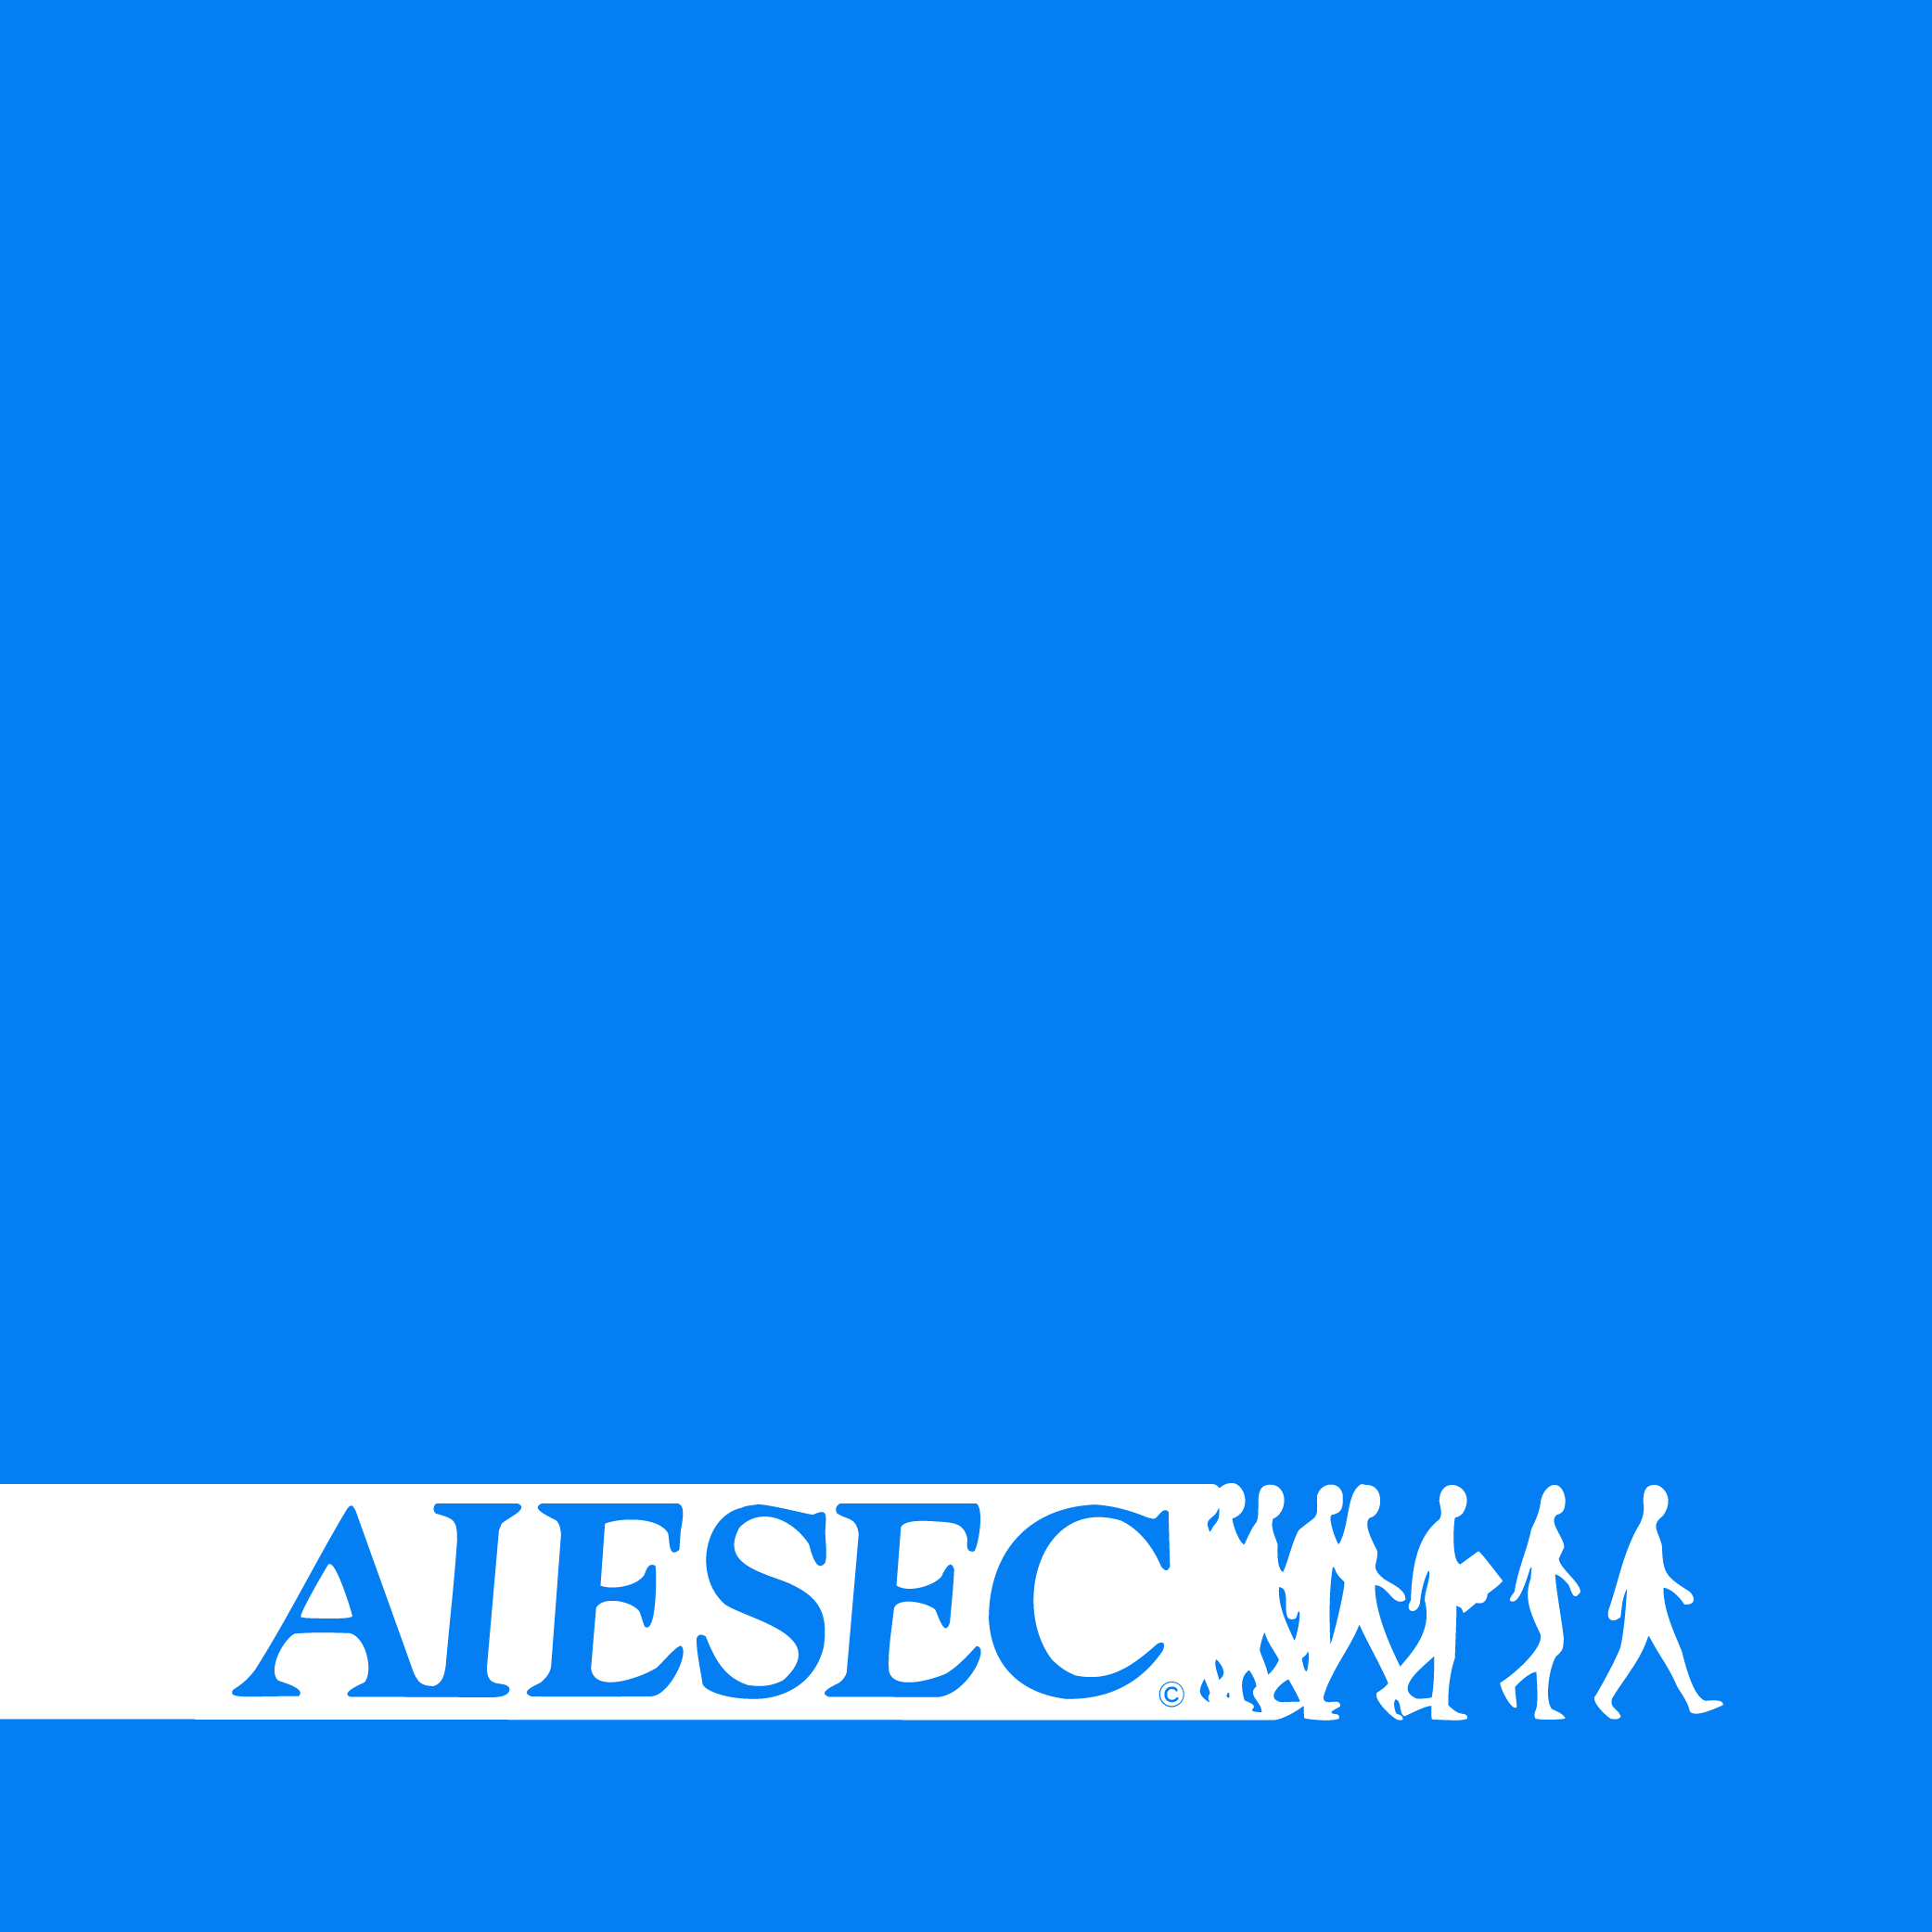 AIESEC-Logo-Square_Old-White-on-Blue